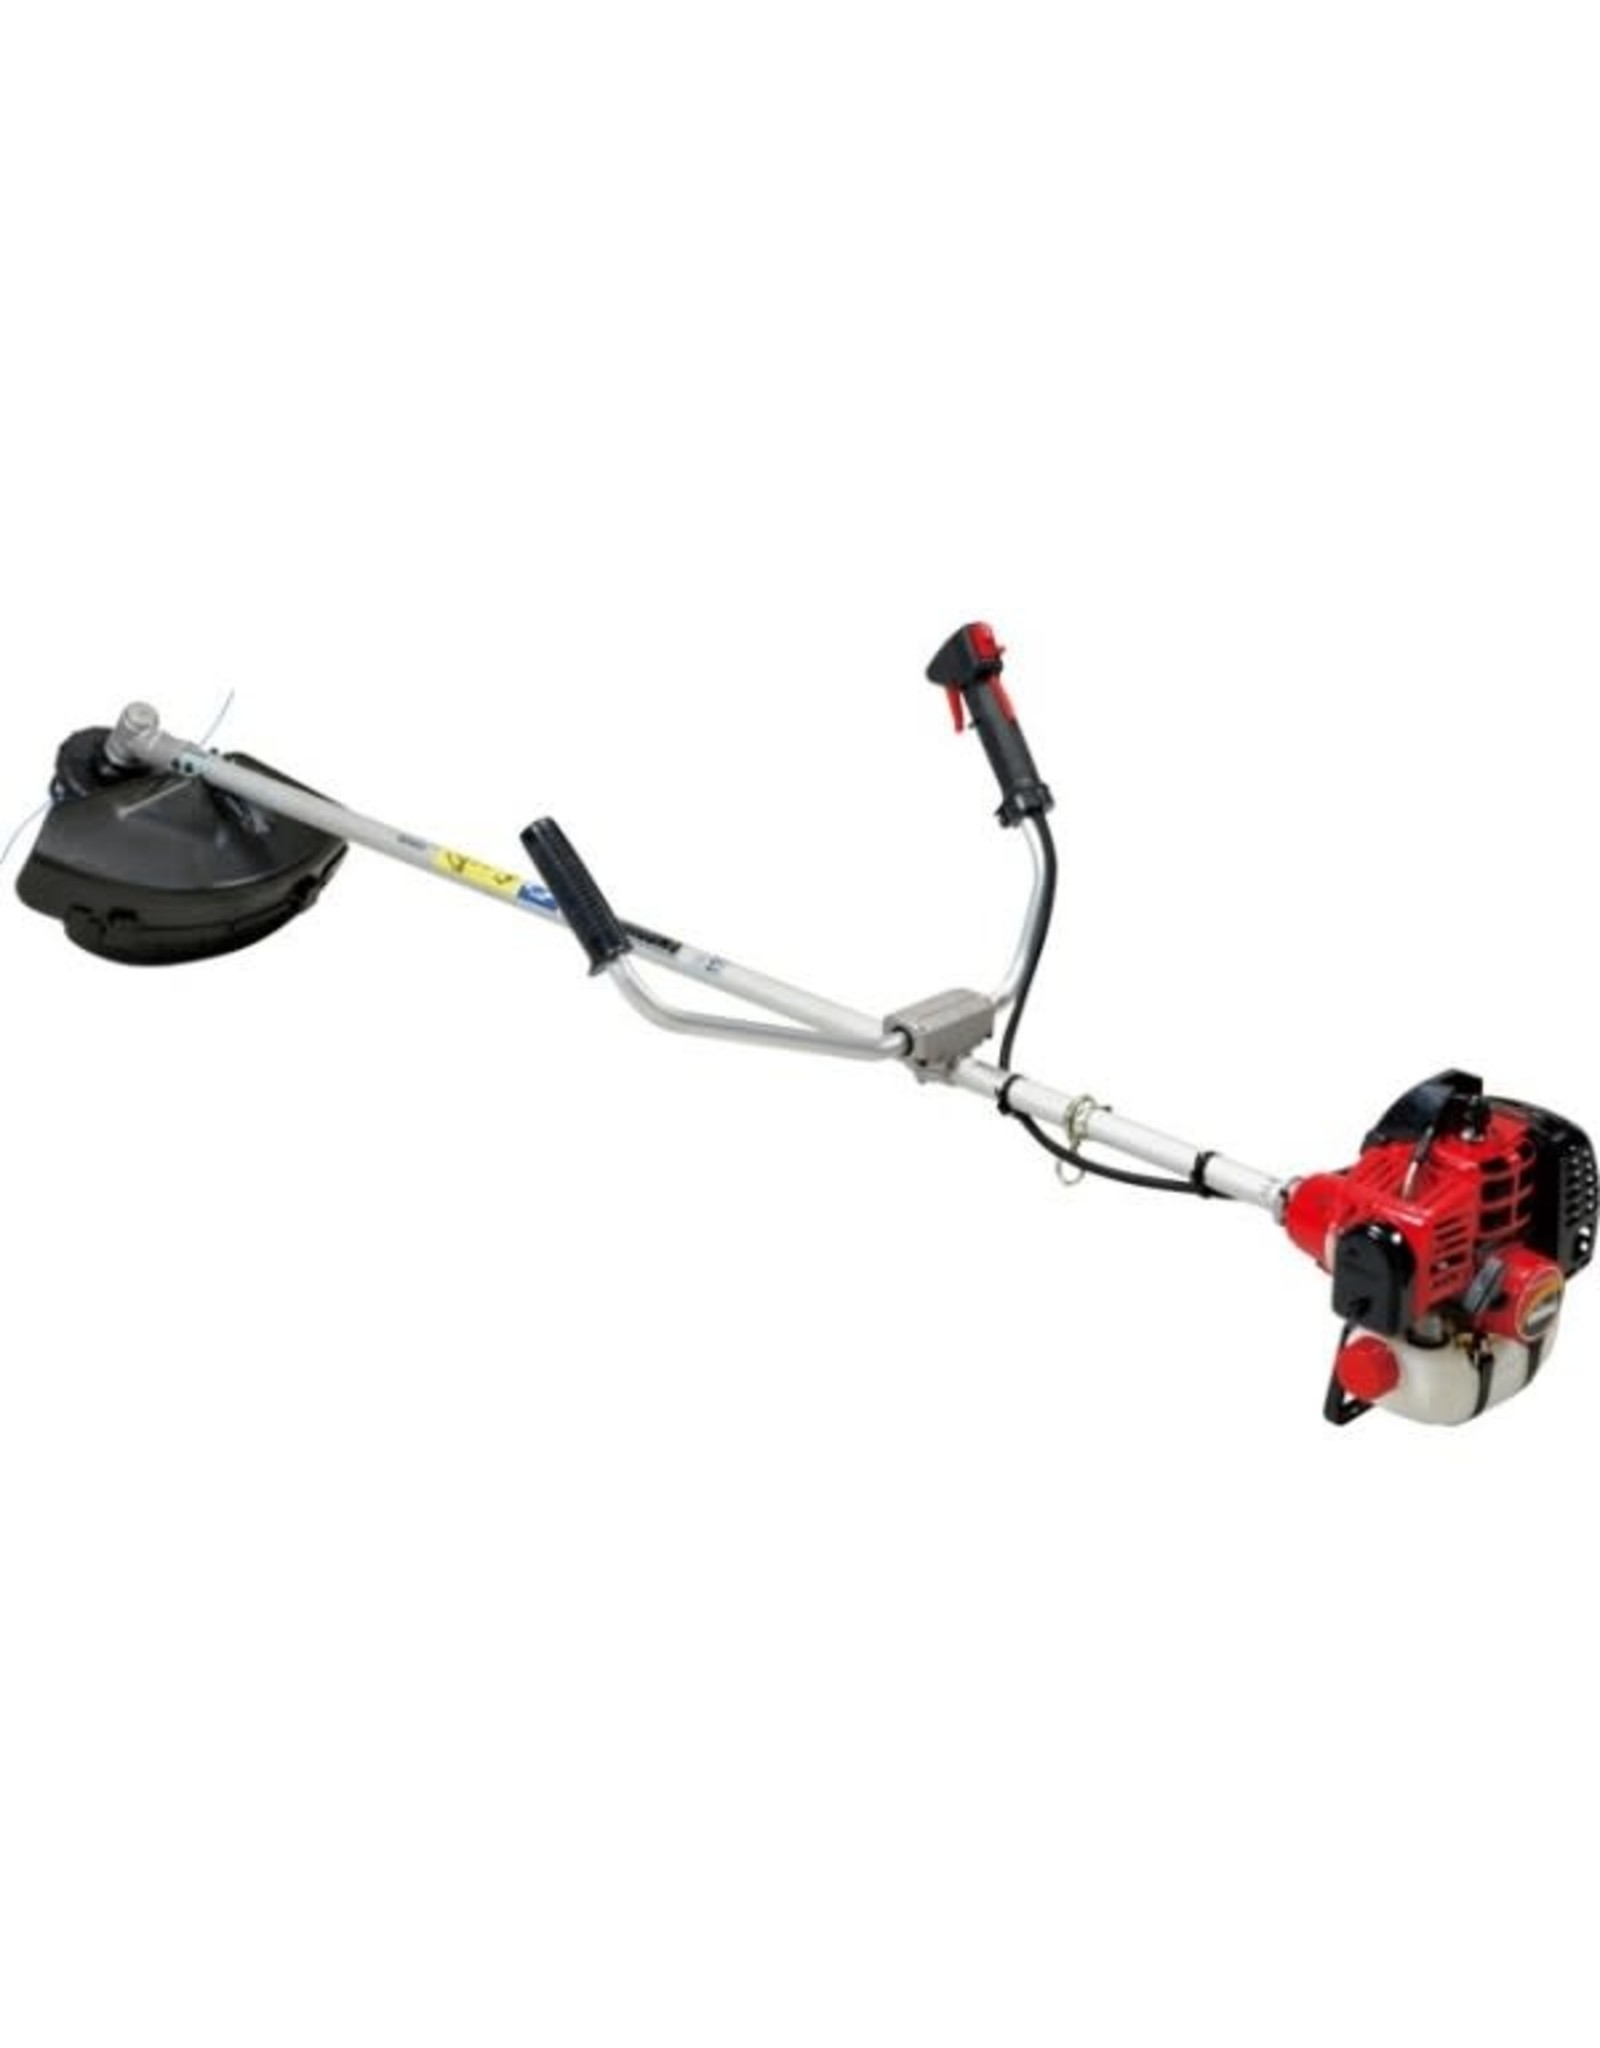 Shindaiwa Trimmer 33cc 2 stroke C350INTL